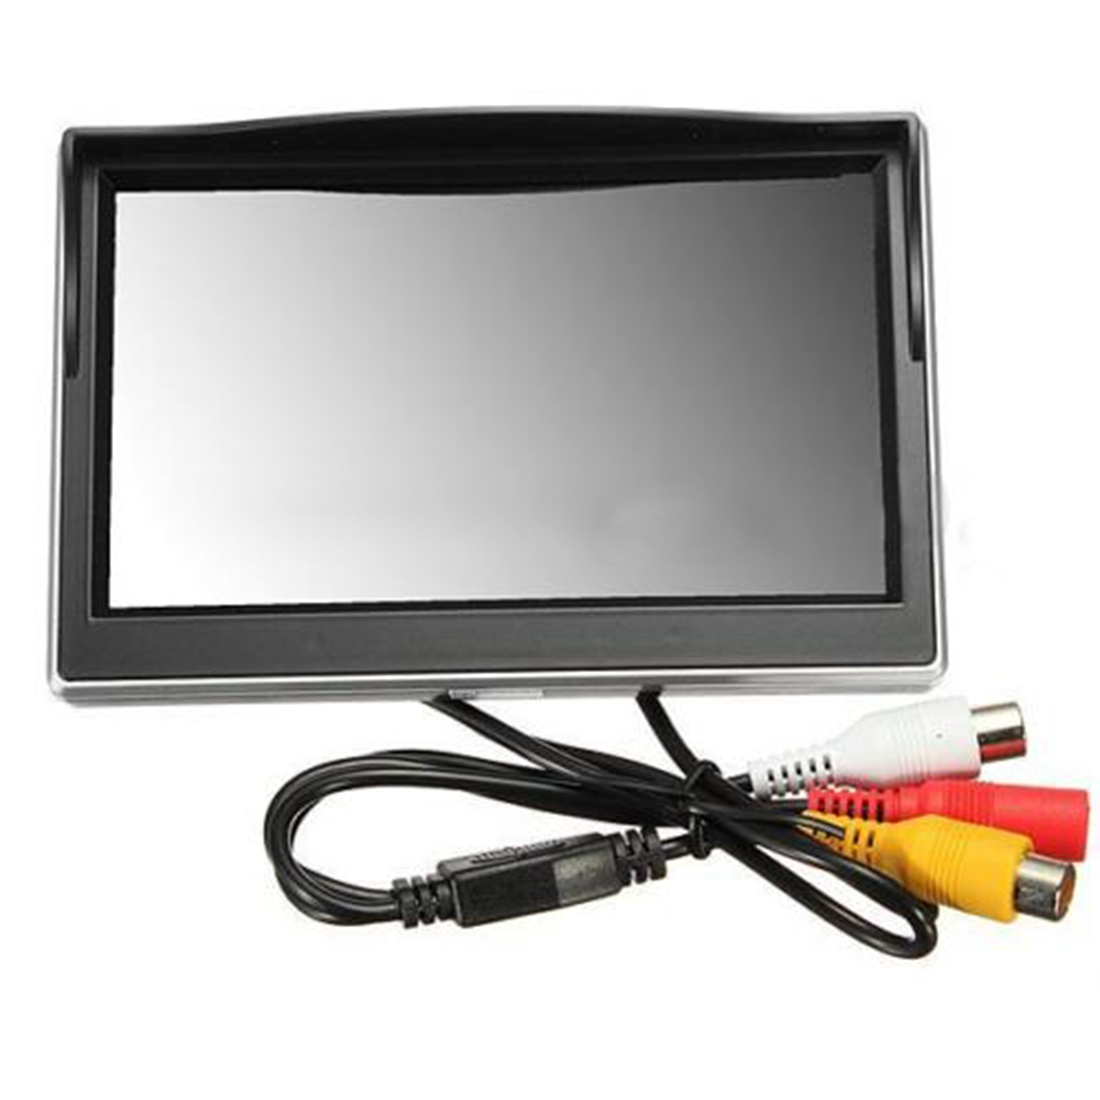 Promotion! New 5 800*480 TFT LCD HD Screen Monitor for Car Rear Rearview Backup Camera high resolution 5 colorful screen tft lcd car rearview mirror monitor 800 480 resolution dc 12v car monitor for dvd camera vcr